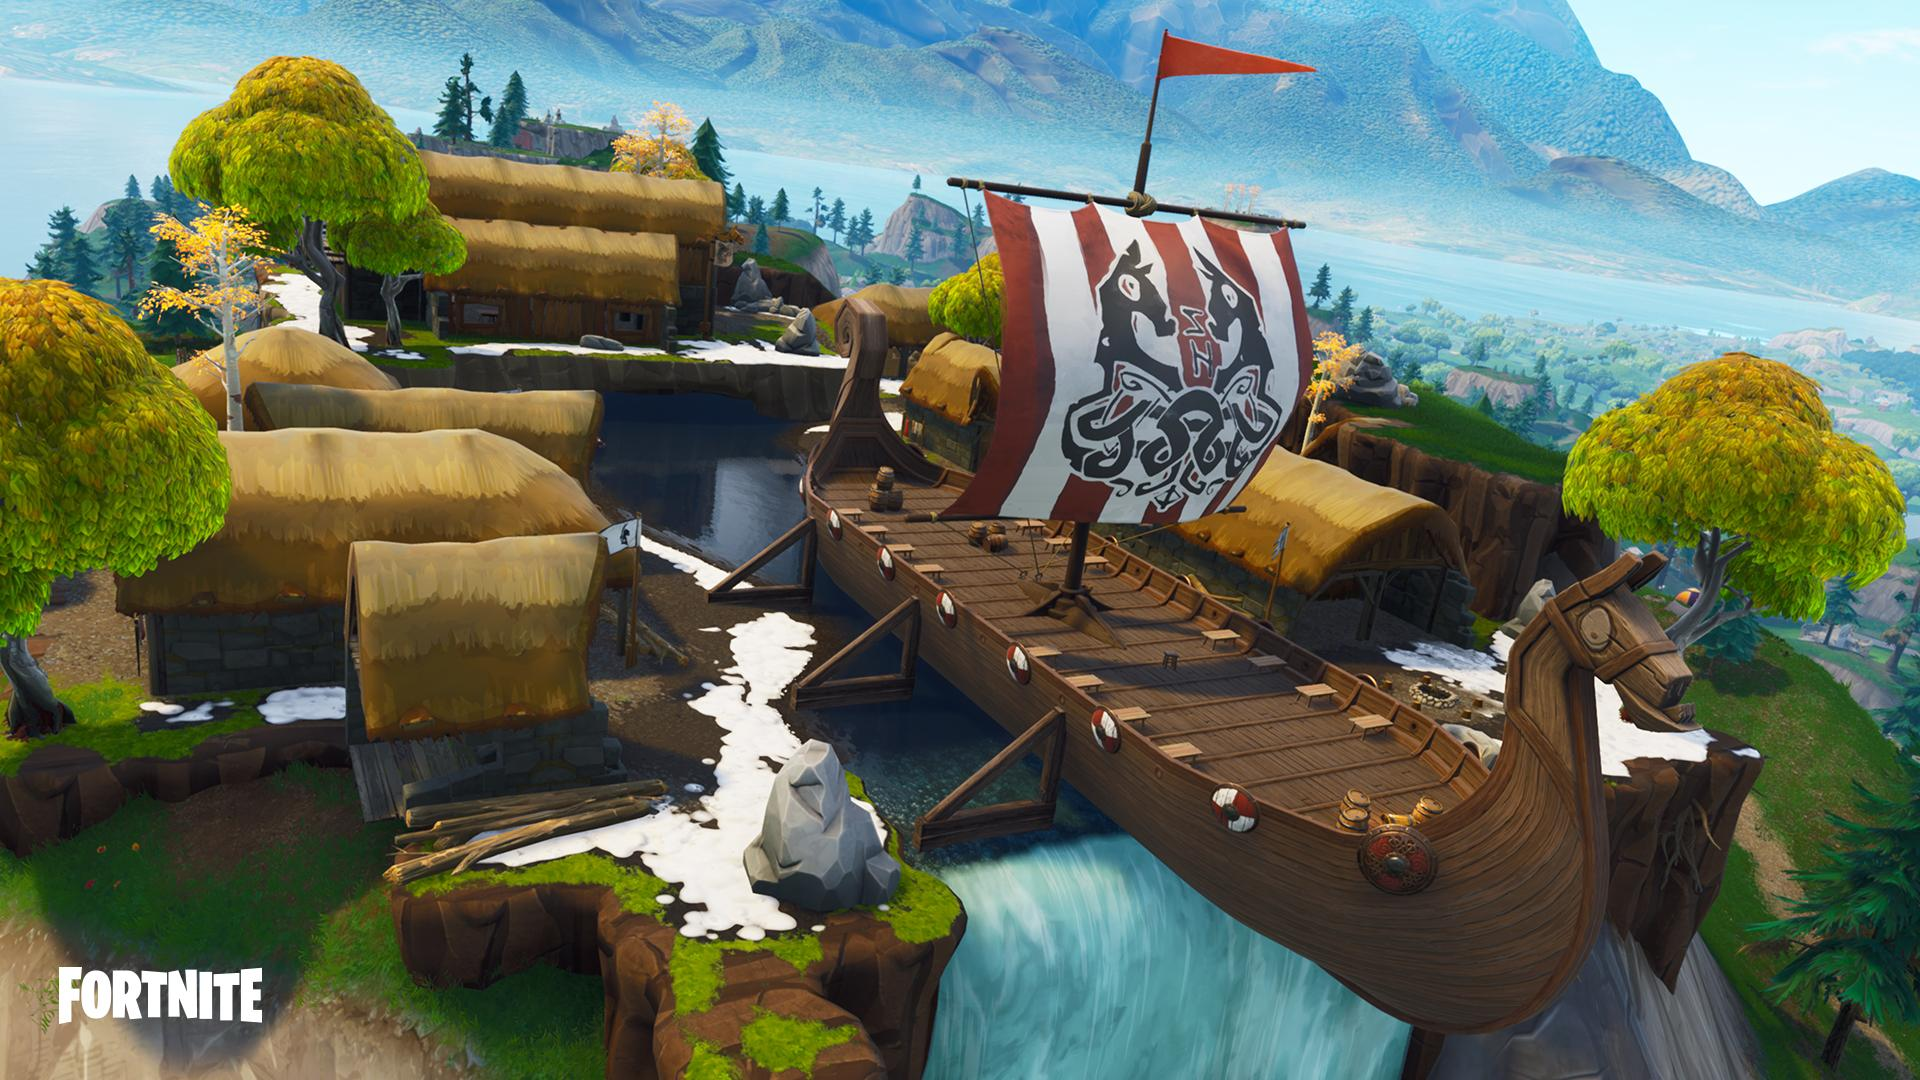 The sail of the ship has two runes on it